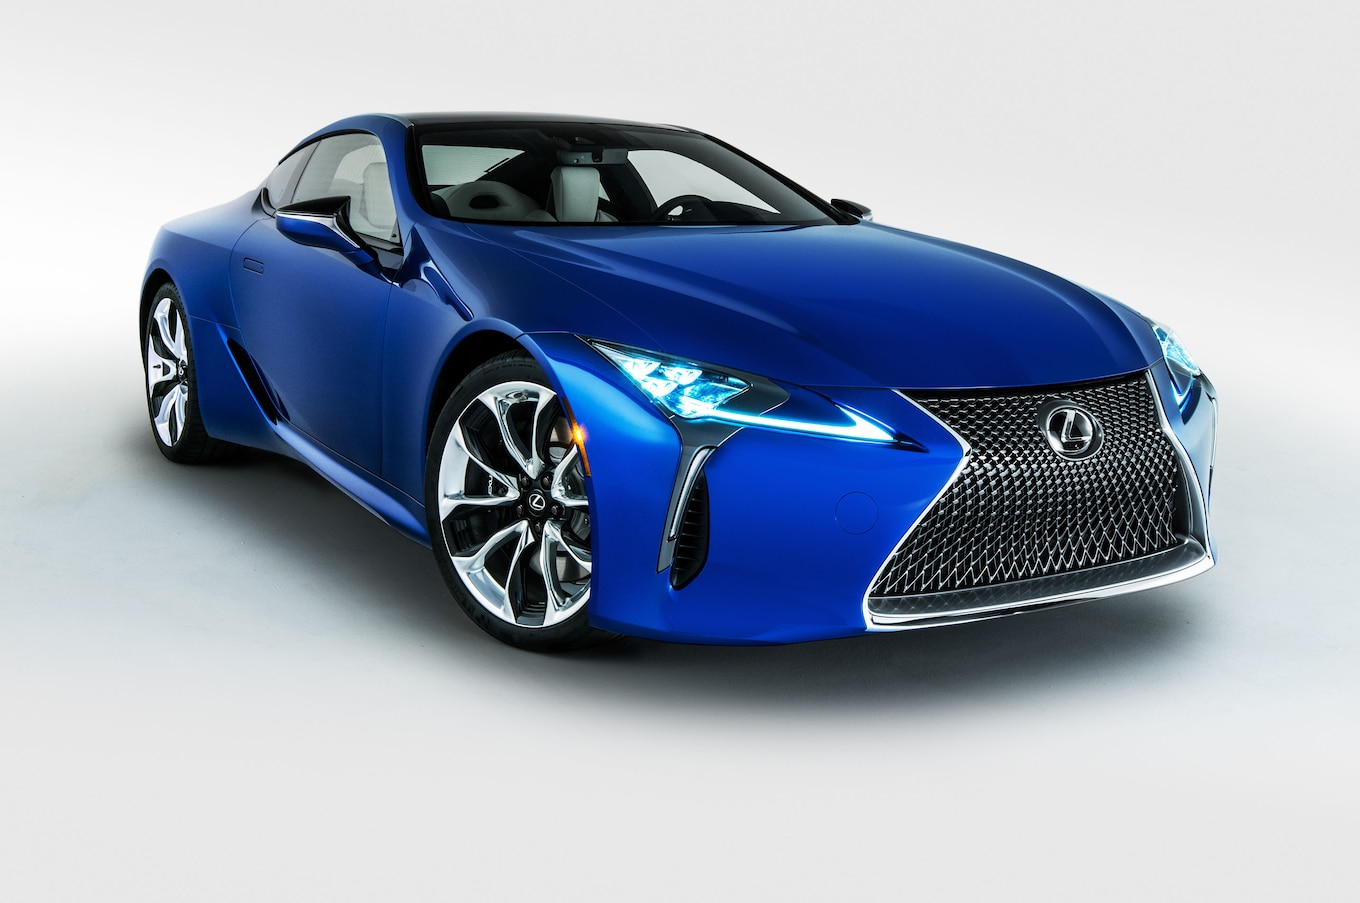 2018 Lexus LC Special Editions Inspired by Black Panther Movie